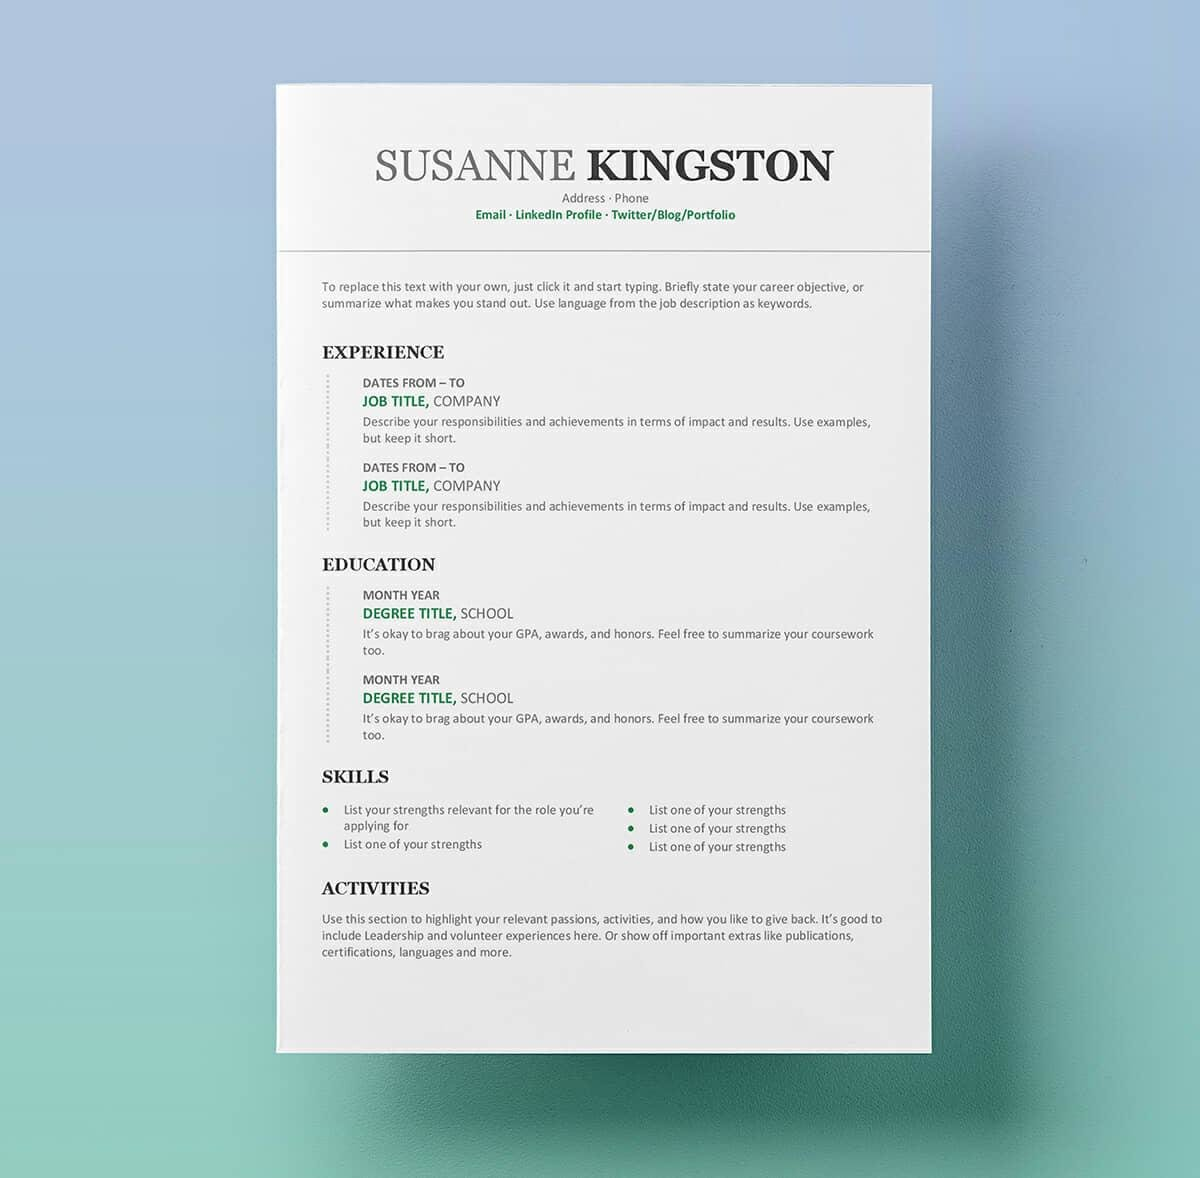 Marvelous Resume Templates For Word (FREE): 15+ Examples For Download